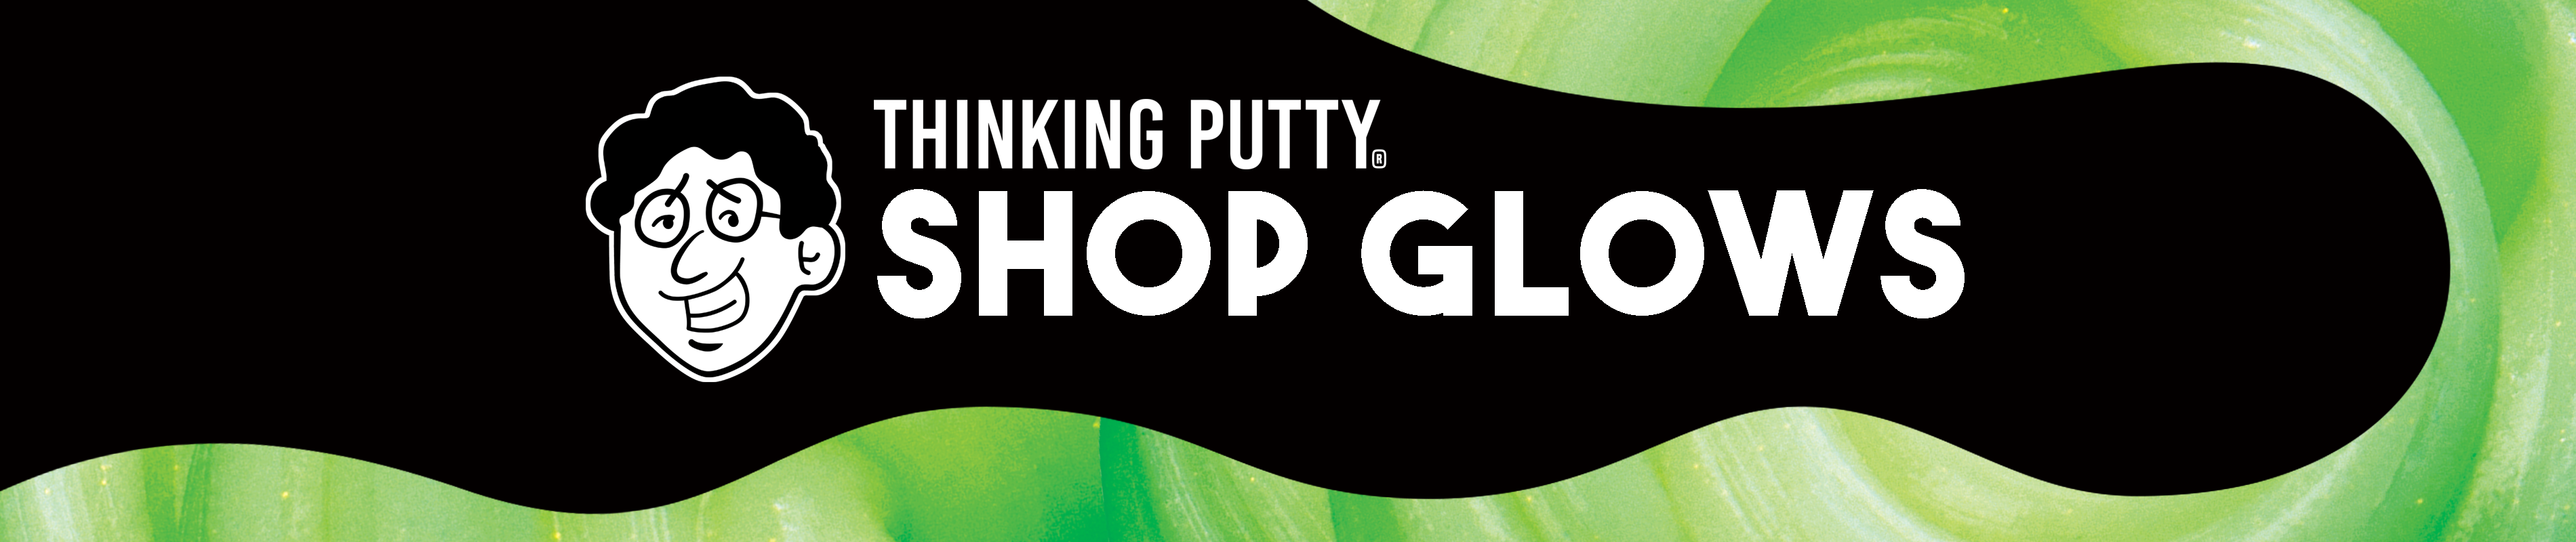 Shop Glow in the Dark Thinking Putty